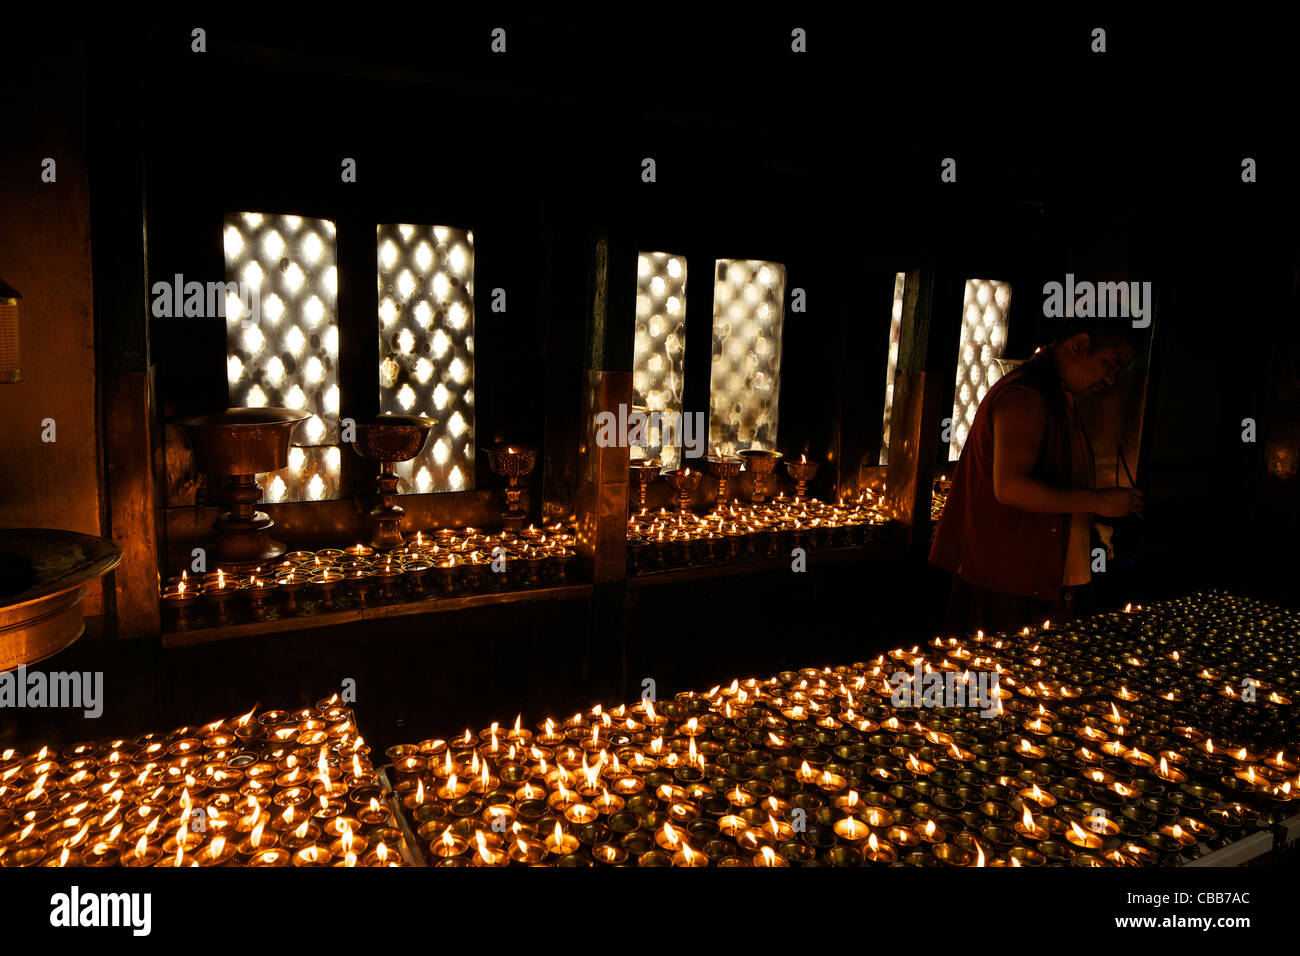 Buddhist monk lighting oil lamps Swayambhunath Stupa Monkey Temple UNESCO World Heritage Site Kathmandu Nepal Asia - Stock Image